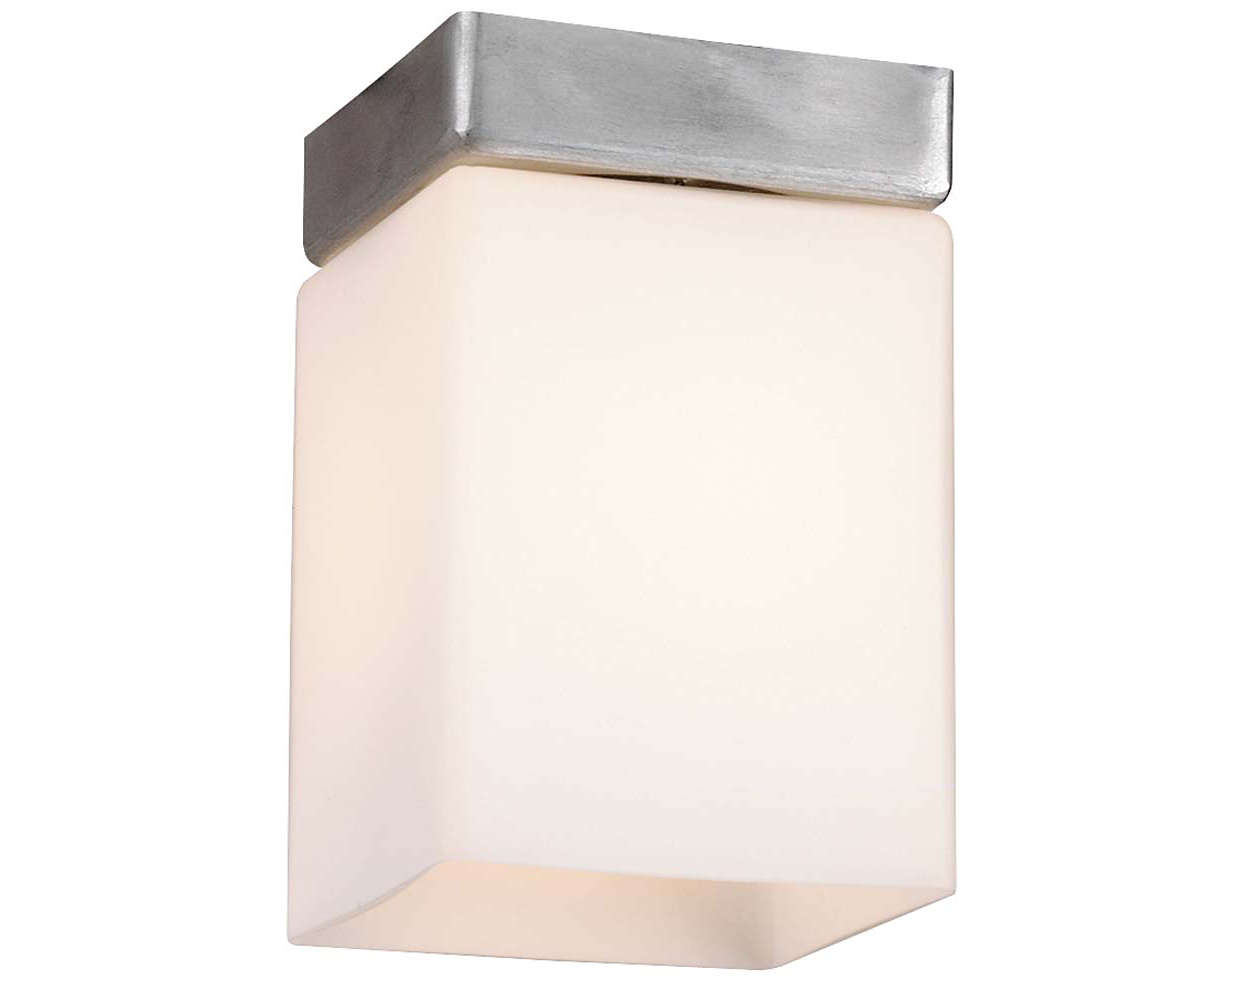 Beacon 1-light Ceiling in Satin Aluminum finish